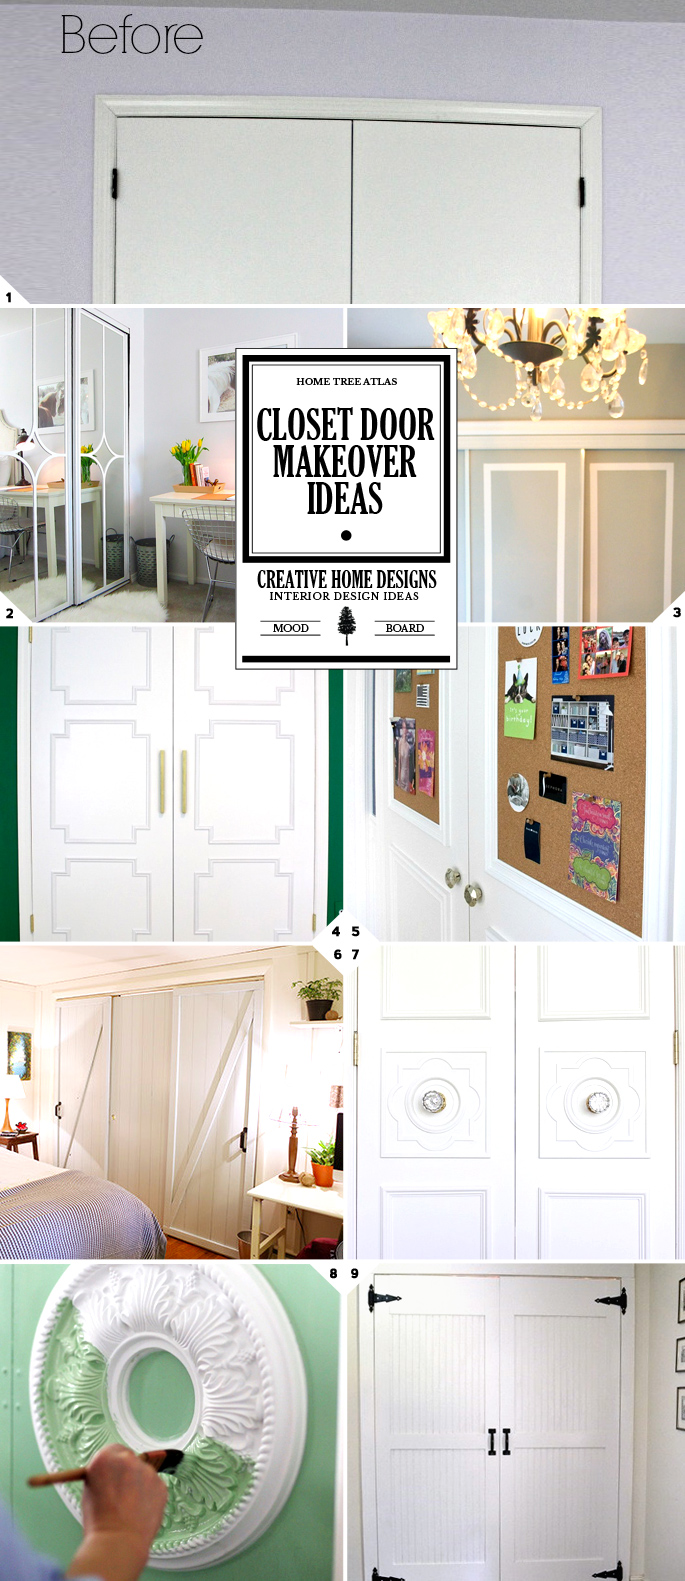 closet doors. DIY Challenge: Give Your Closet Doors A Makeover \u2013 Ideas And Design Tips M